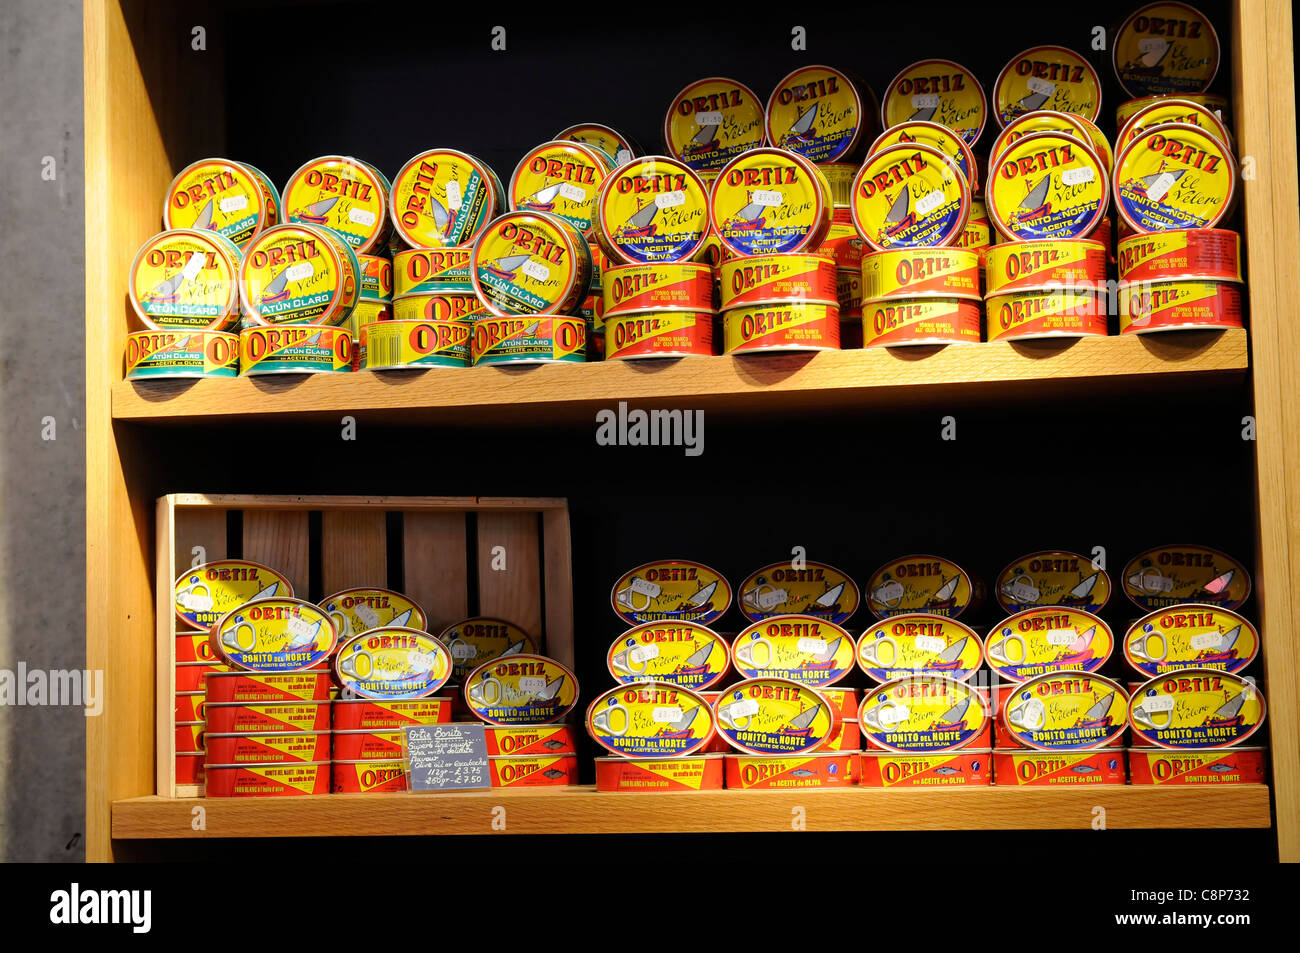 Tins of Spanish tuna, Borough Market, London. - Stock Image